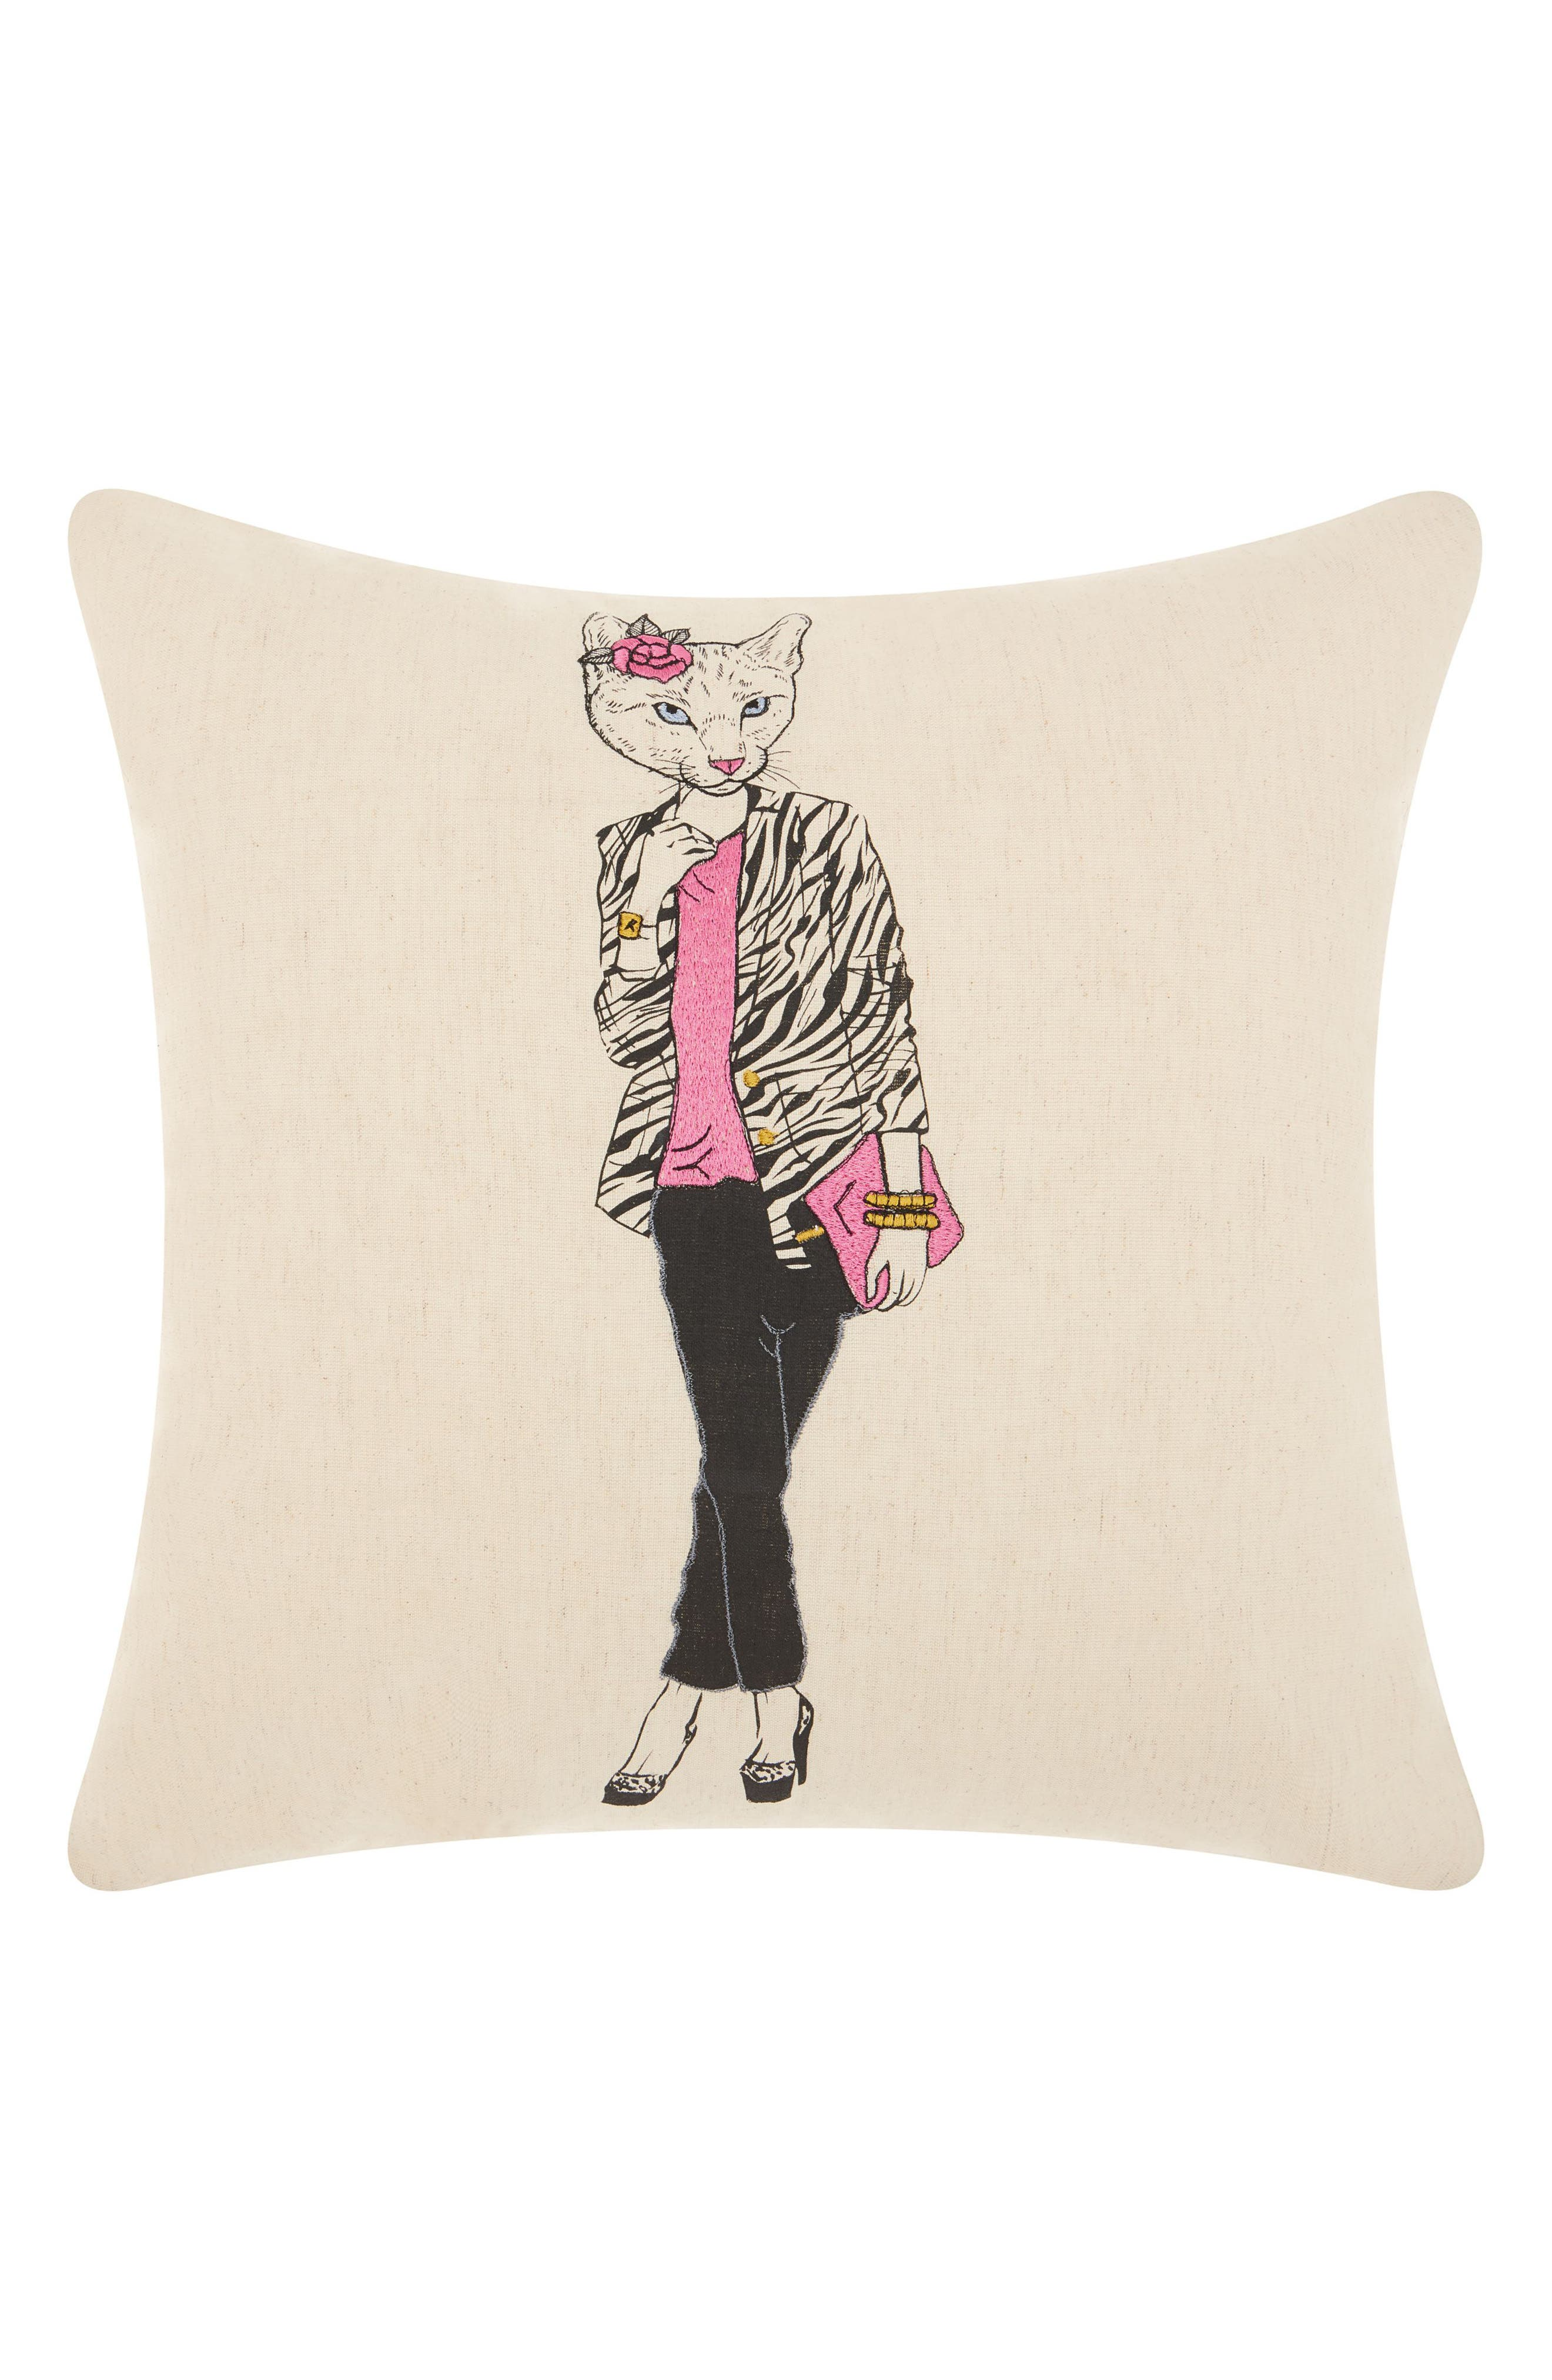 Alternate Image 1 Selected - Mina Victory Classy Kitty Accent Pillow